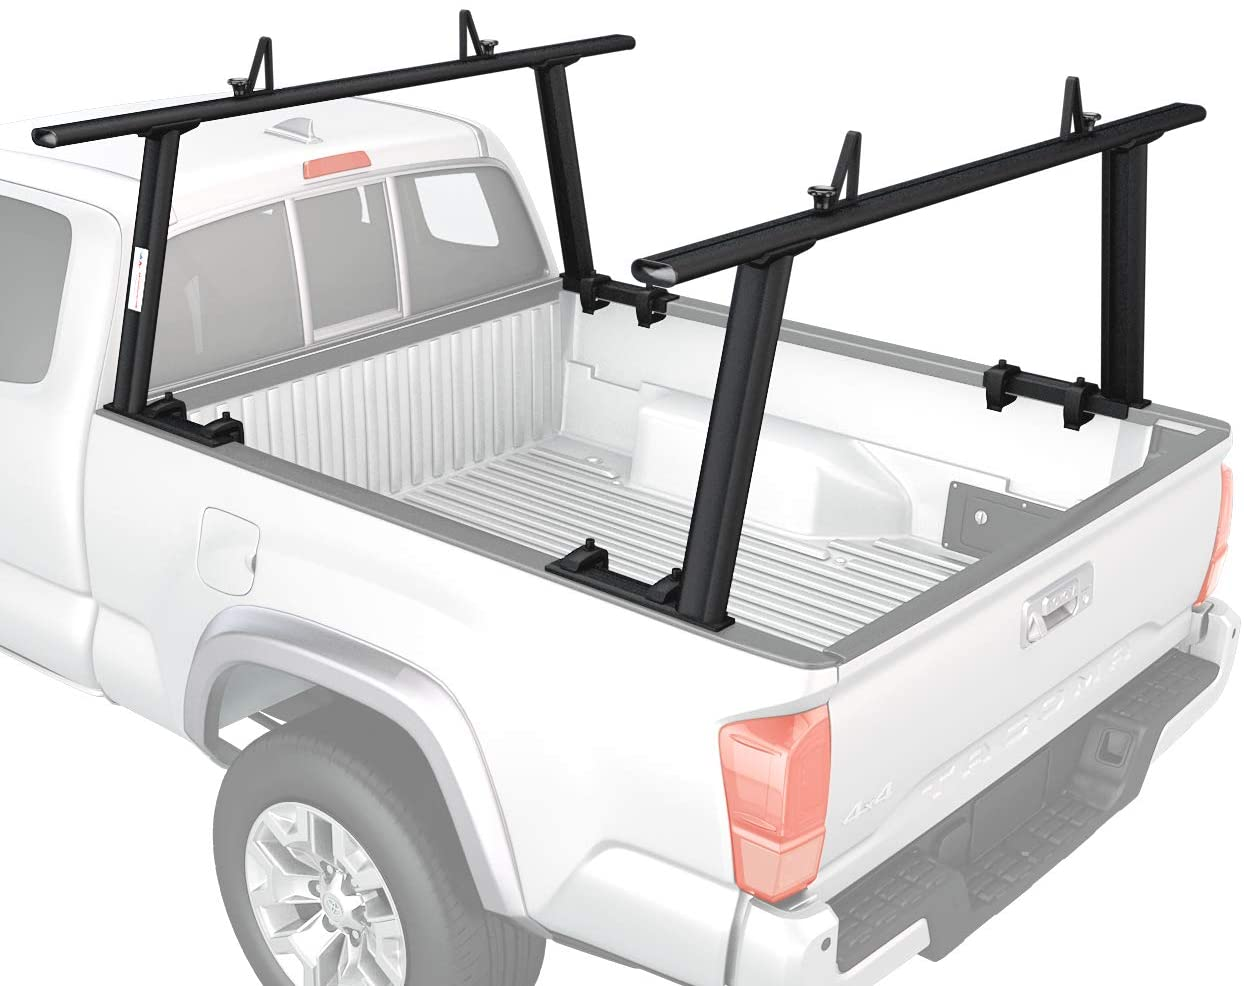 AA-Racks Model APX25 Extendable Aluminum Ra Truck Ladder All items free shipping Max 74% OFF Pick-Up